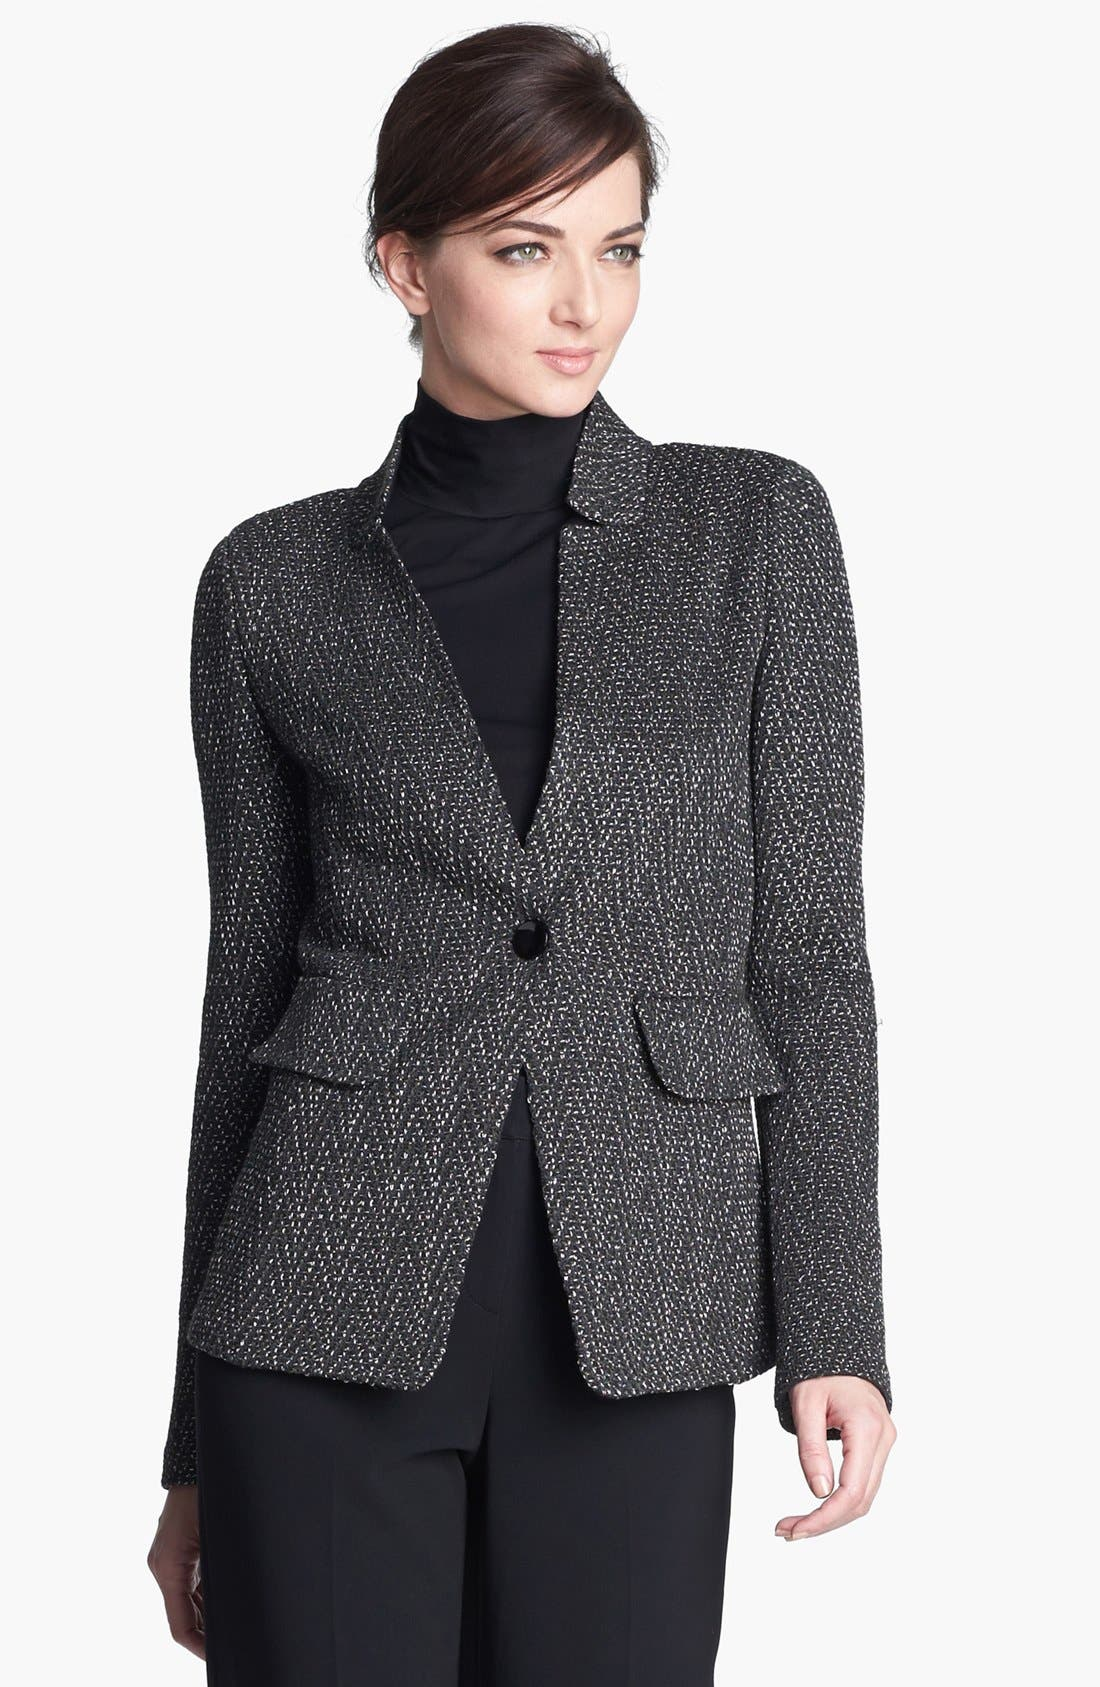 Alternate Image 1 Selected - St. John Collection Donegal Chevron Tweed Knit Jacket